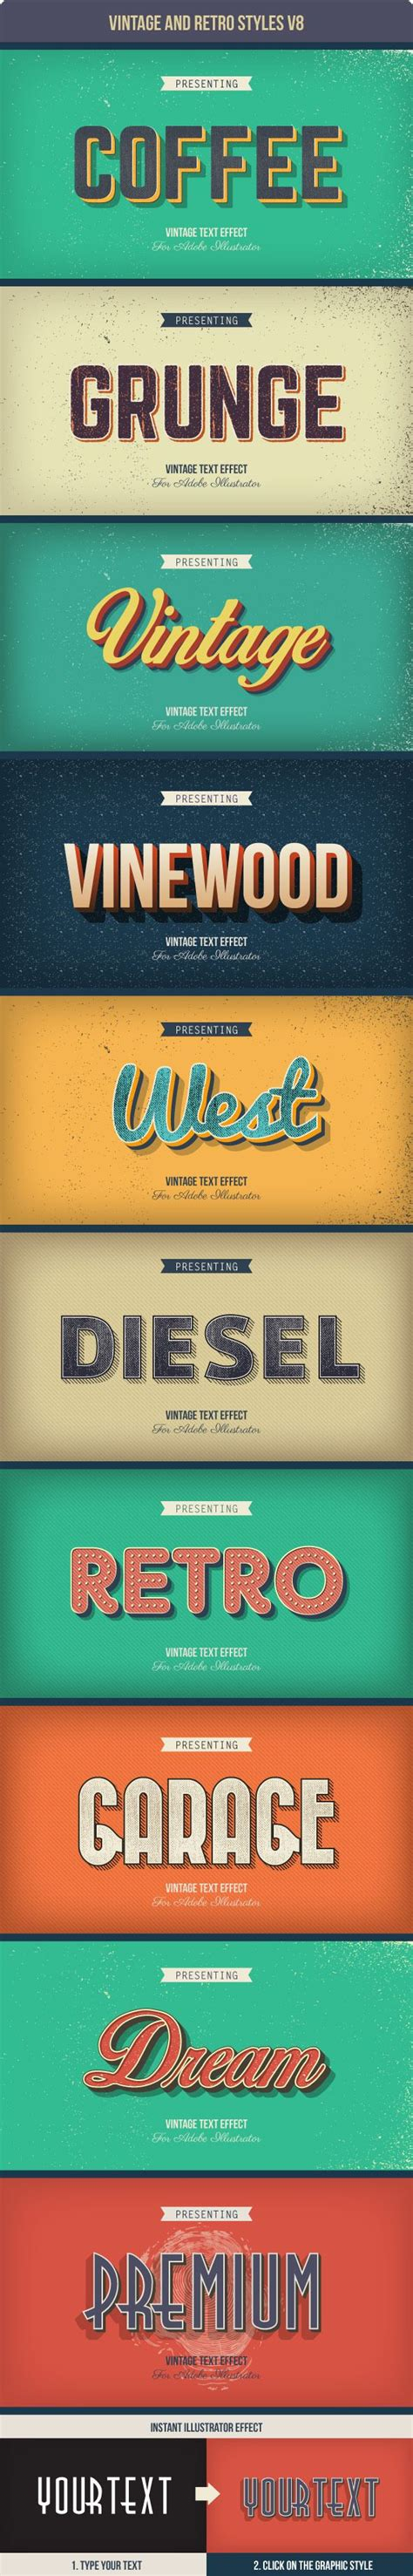 Wedding Font Adobe Illustrator by Typography Vintage And Retro Text Styles For Adobe